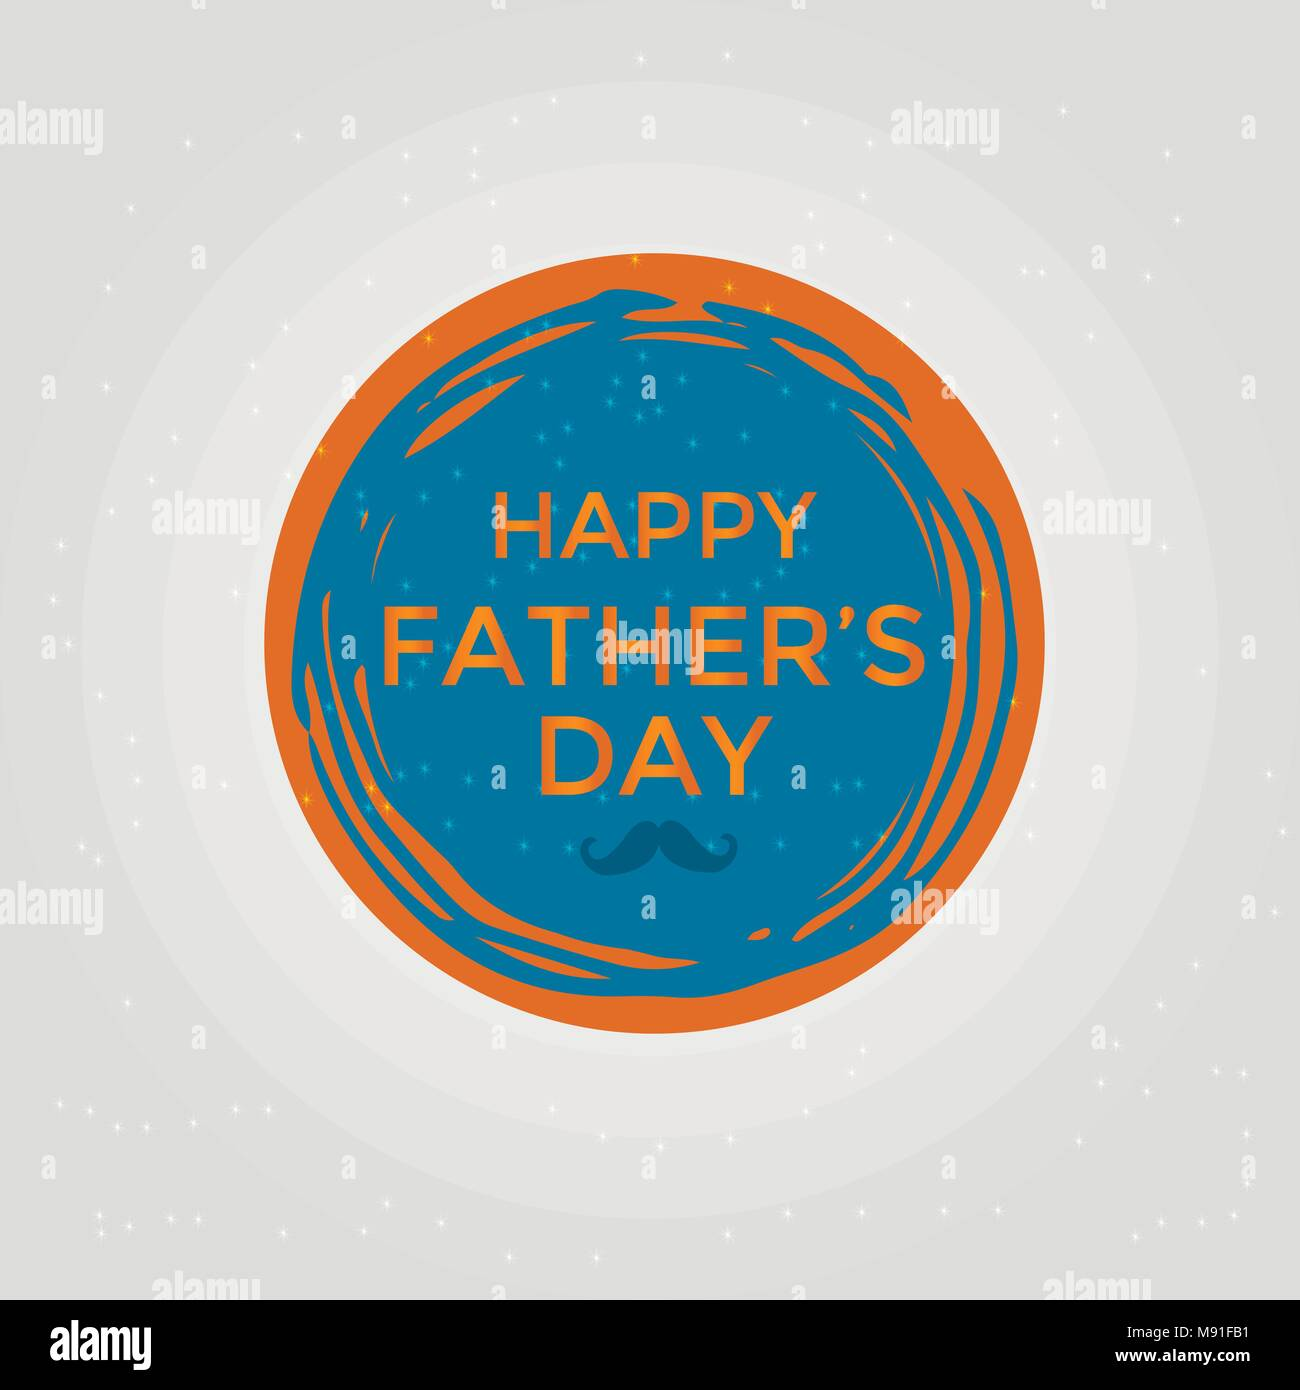 bba4b60780bf7 Happy Father s Day sale. Vector illustration for promotion